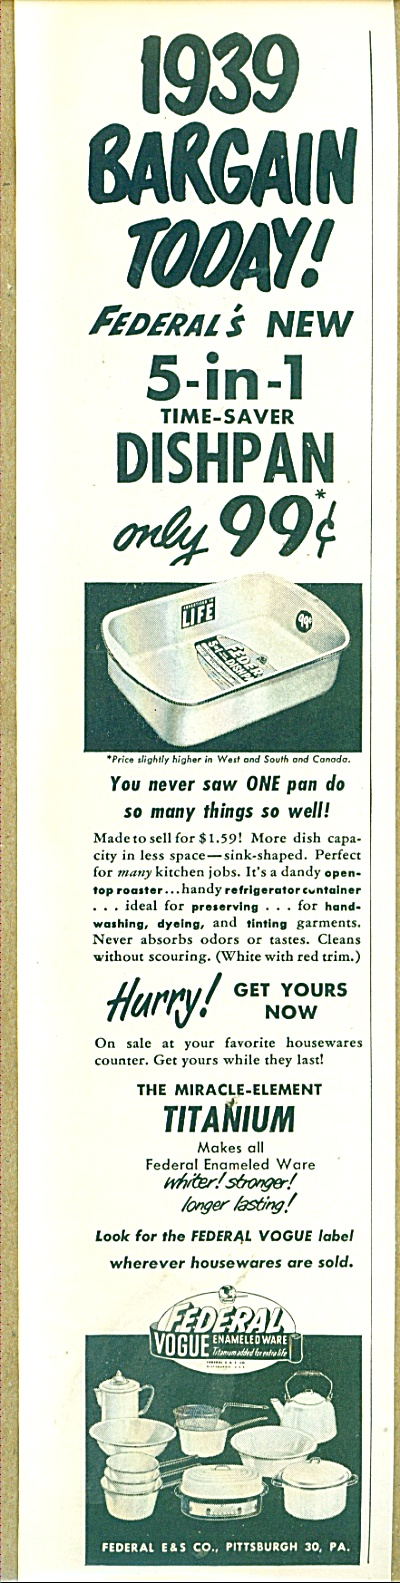 Federal vogue enameledware ad 1952 (Image1)